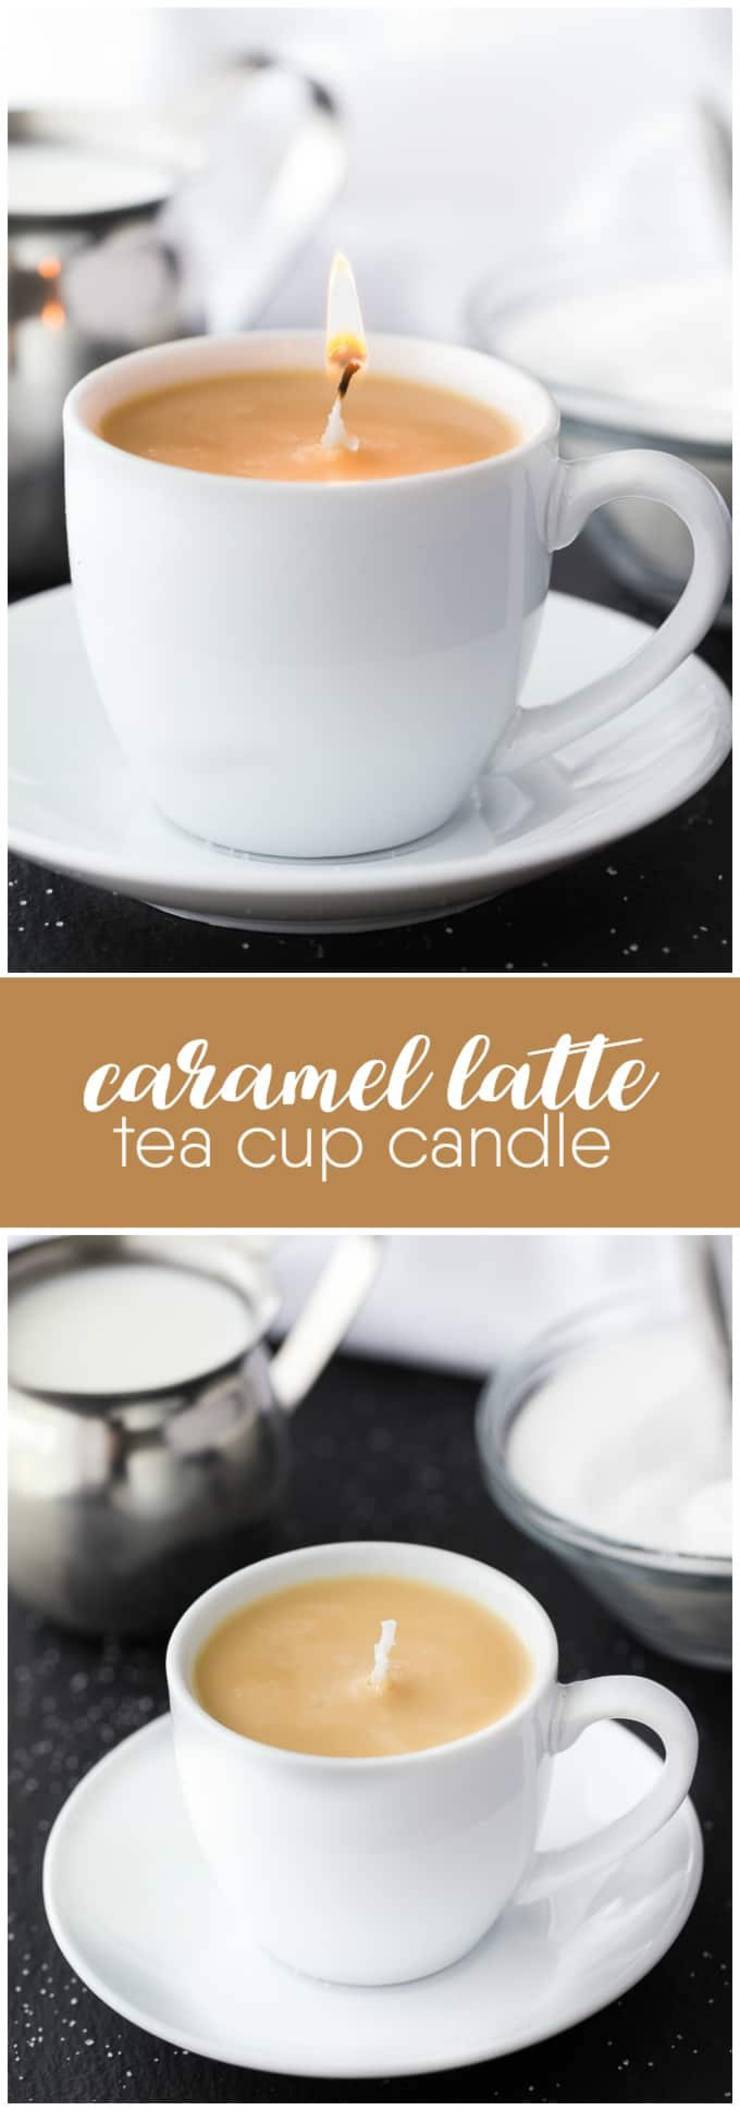 homemade caramel latte candle